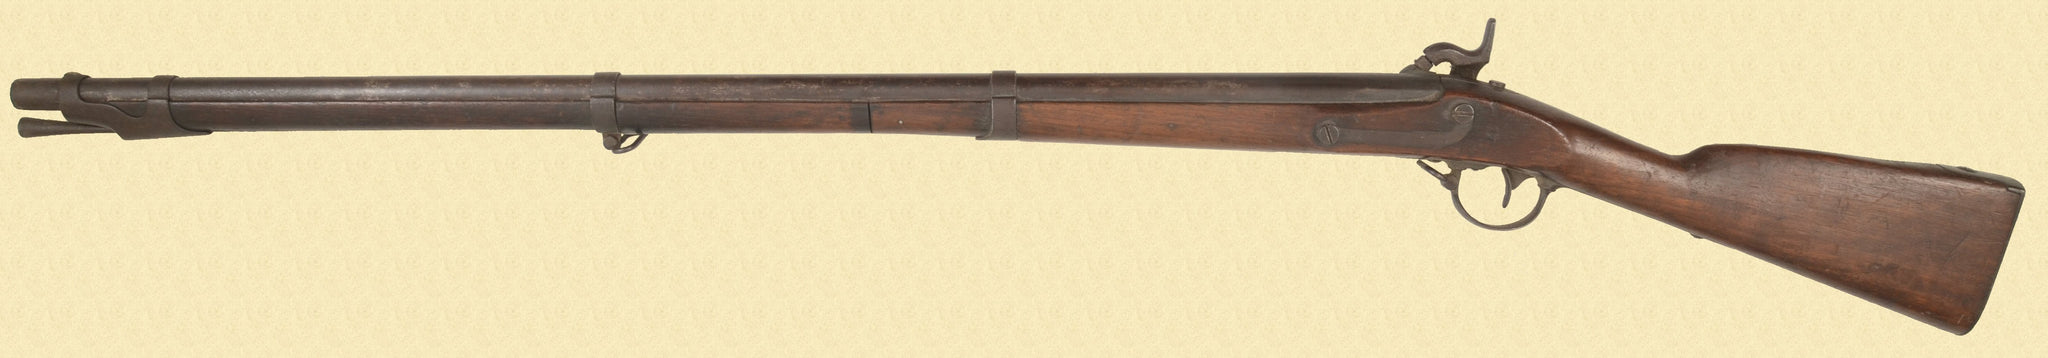 HARPERS FERRY 1841 PERCUSSION RIFLE